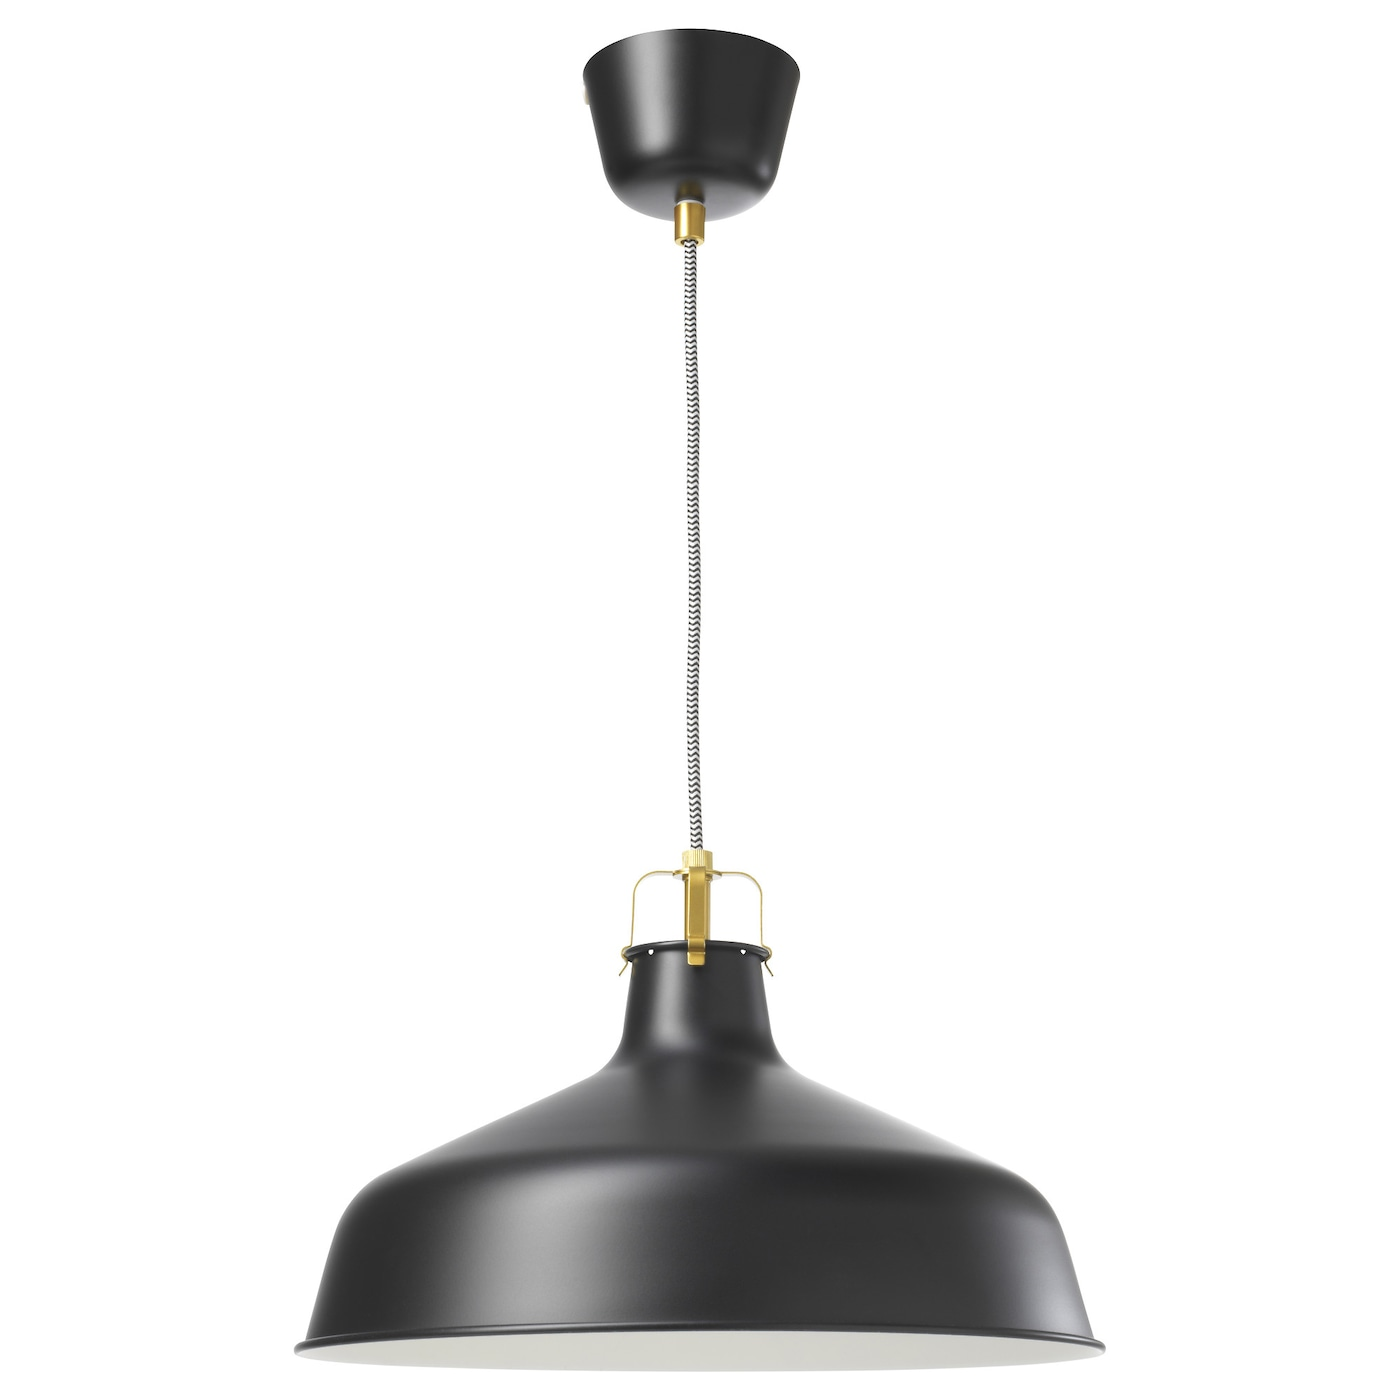 Ikea ceiling lights led ceiling lights ikea ranarp pendant lamp aloadofball Choice Image